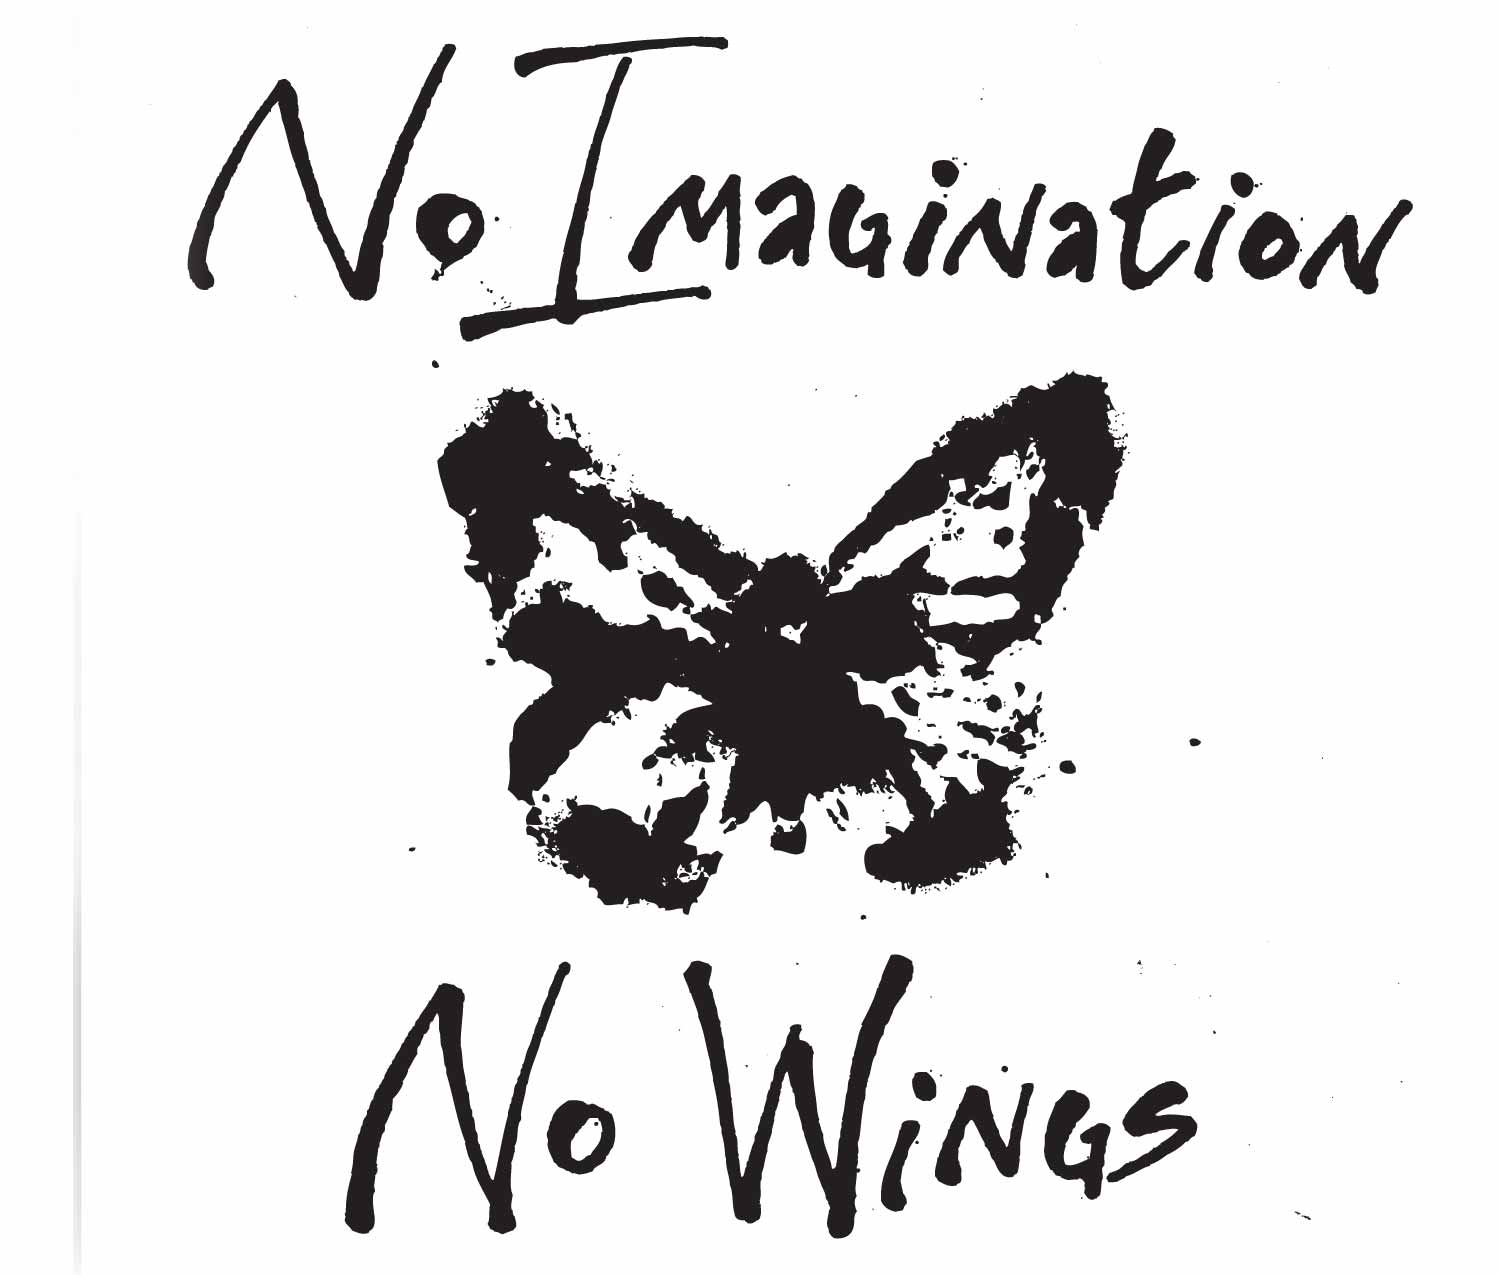 No imagination no wings bumper stickeri support daca bumper sticker home stickers bike stickers no imagination no wings bike sticker